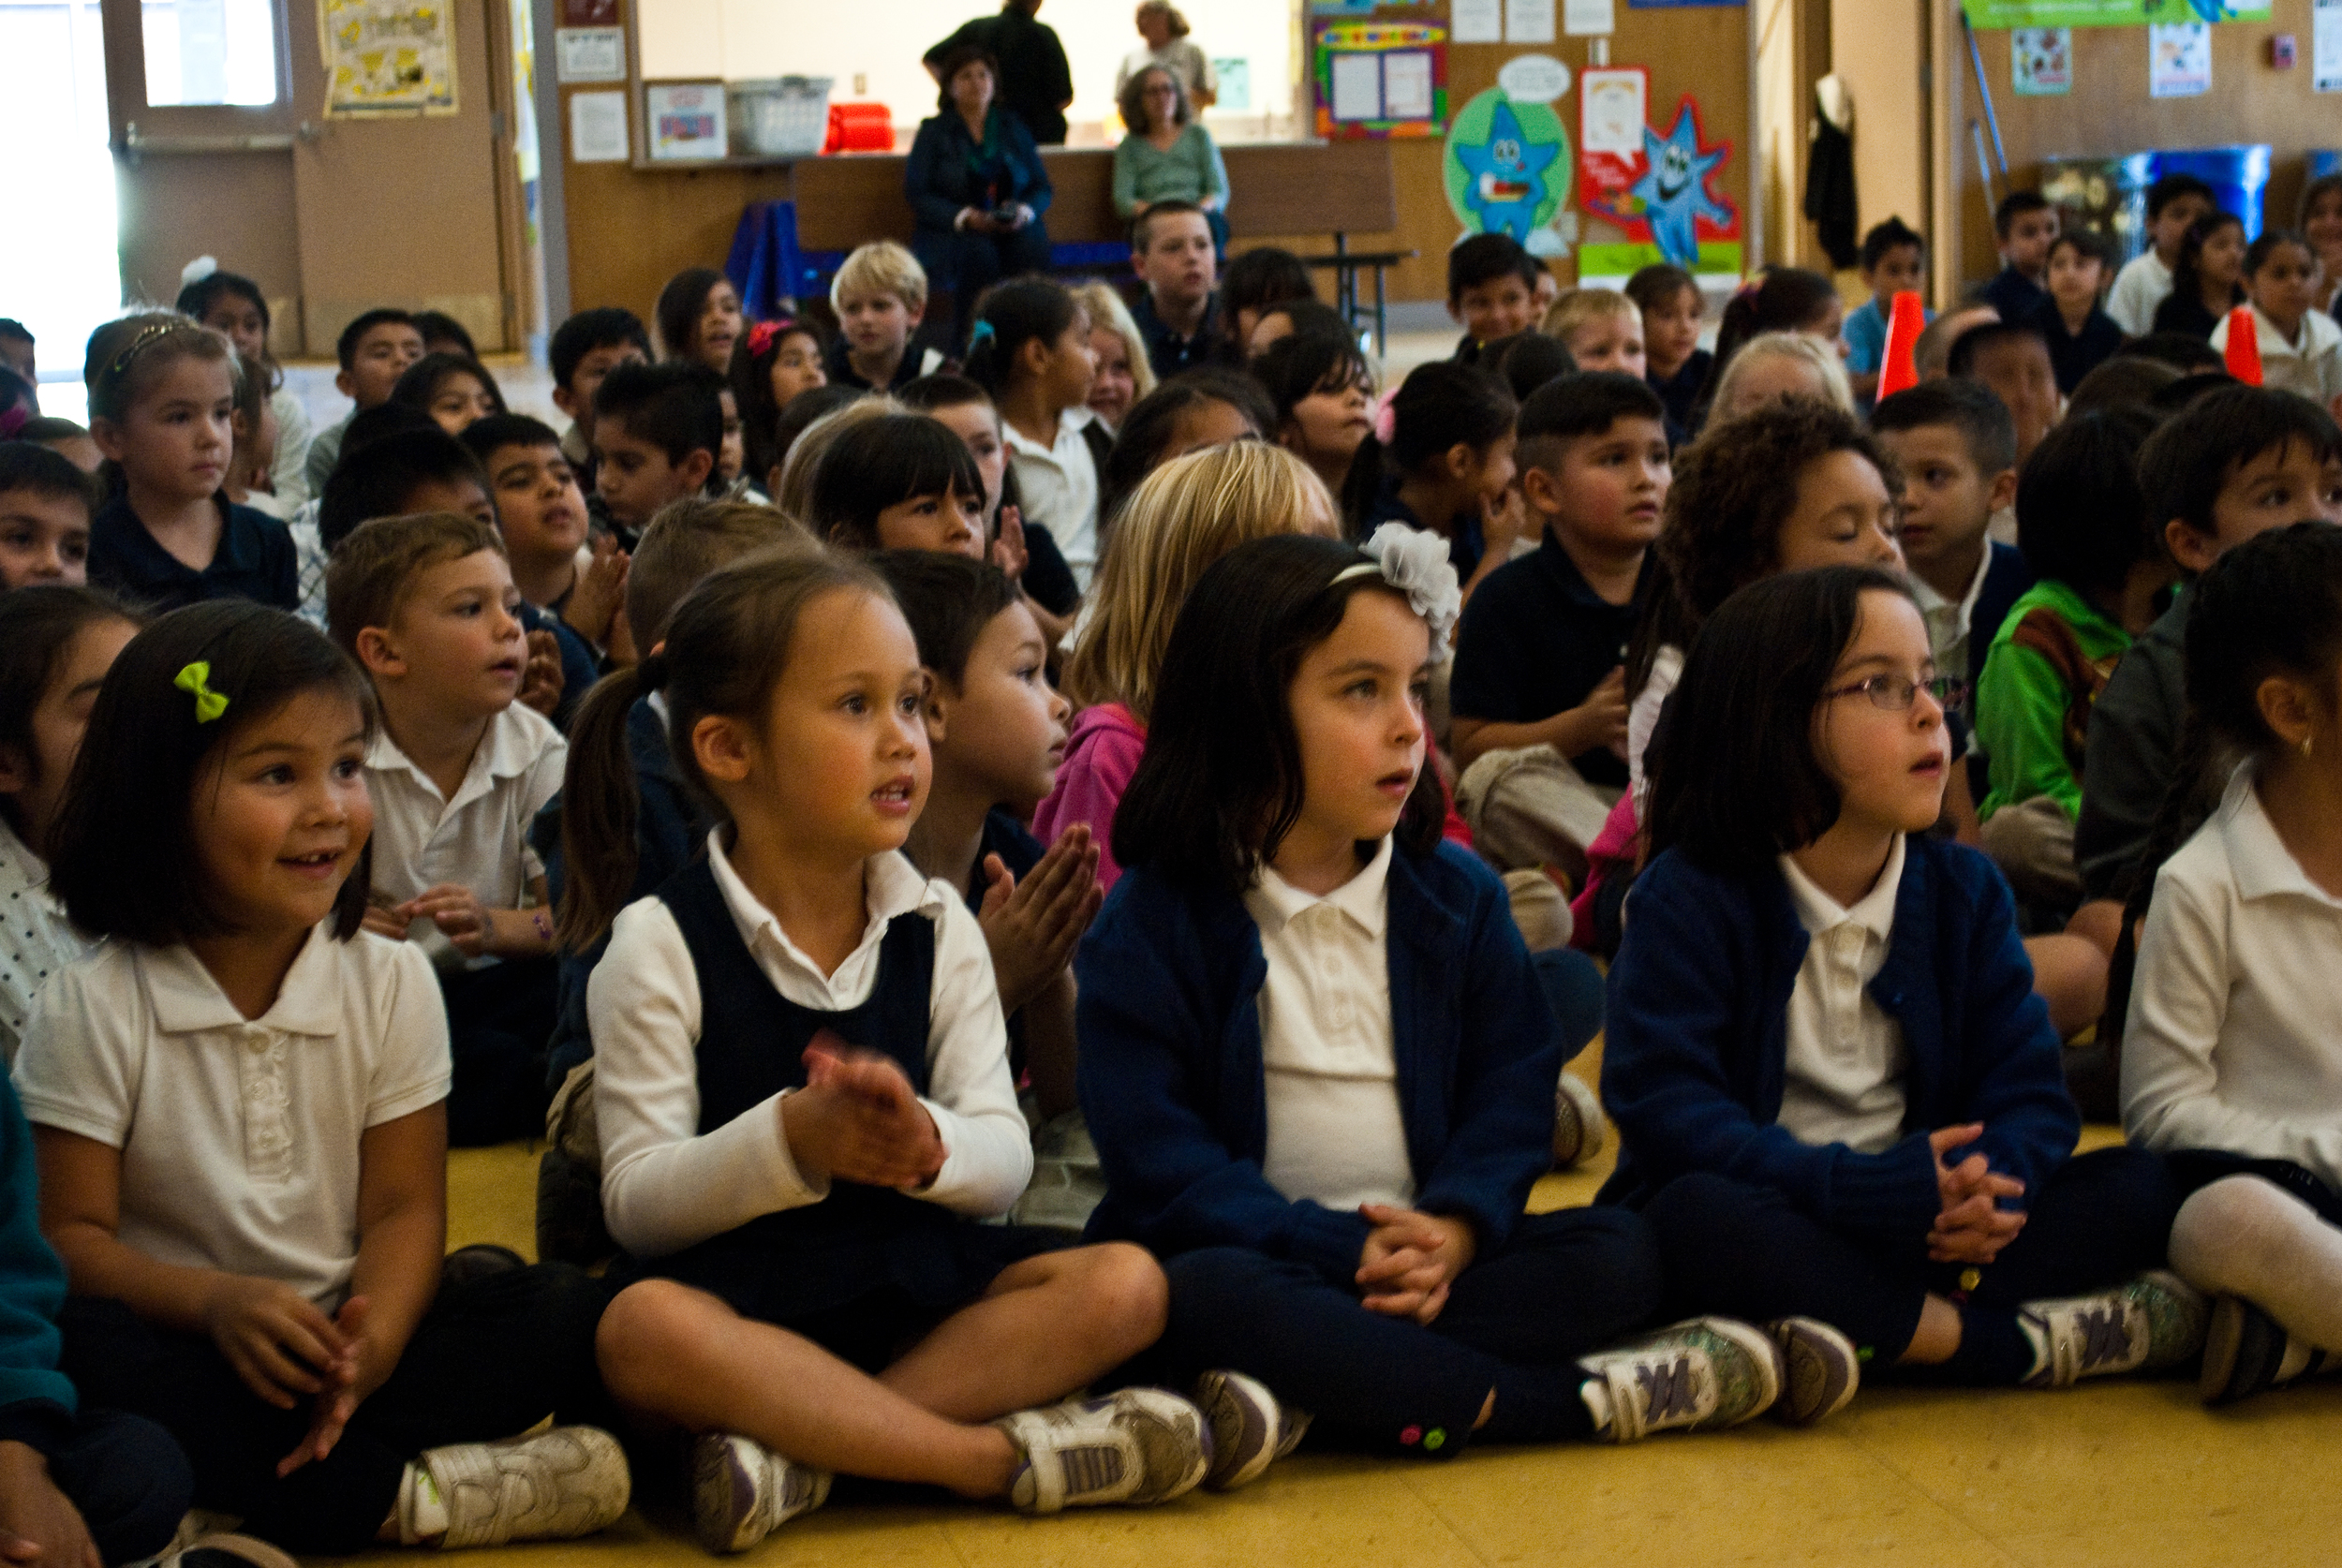 Students watching a performance by Los Cenzontles at Salvador Elementary School